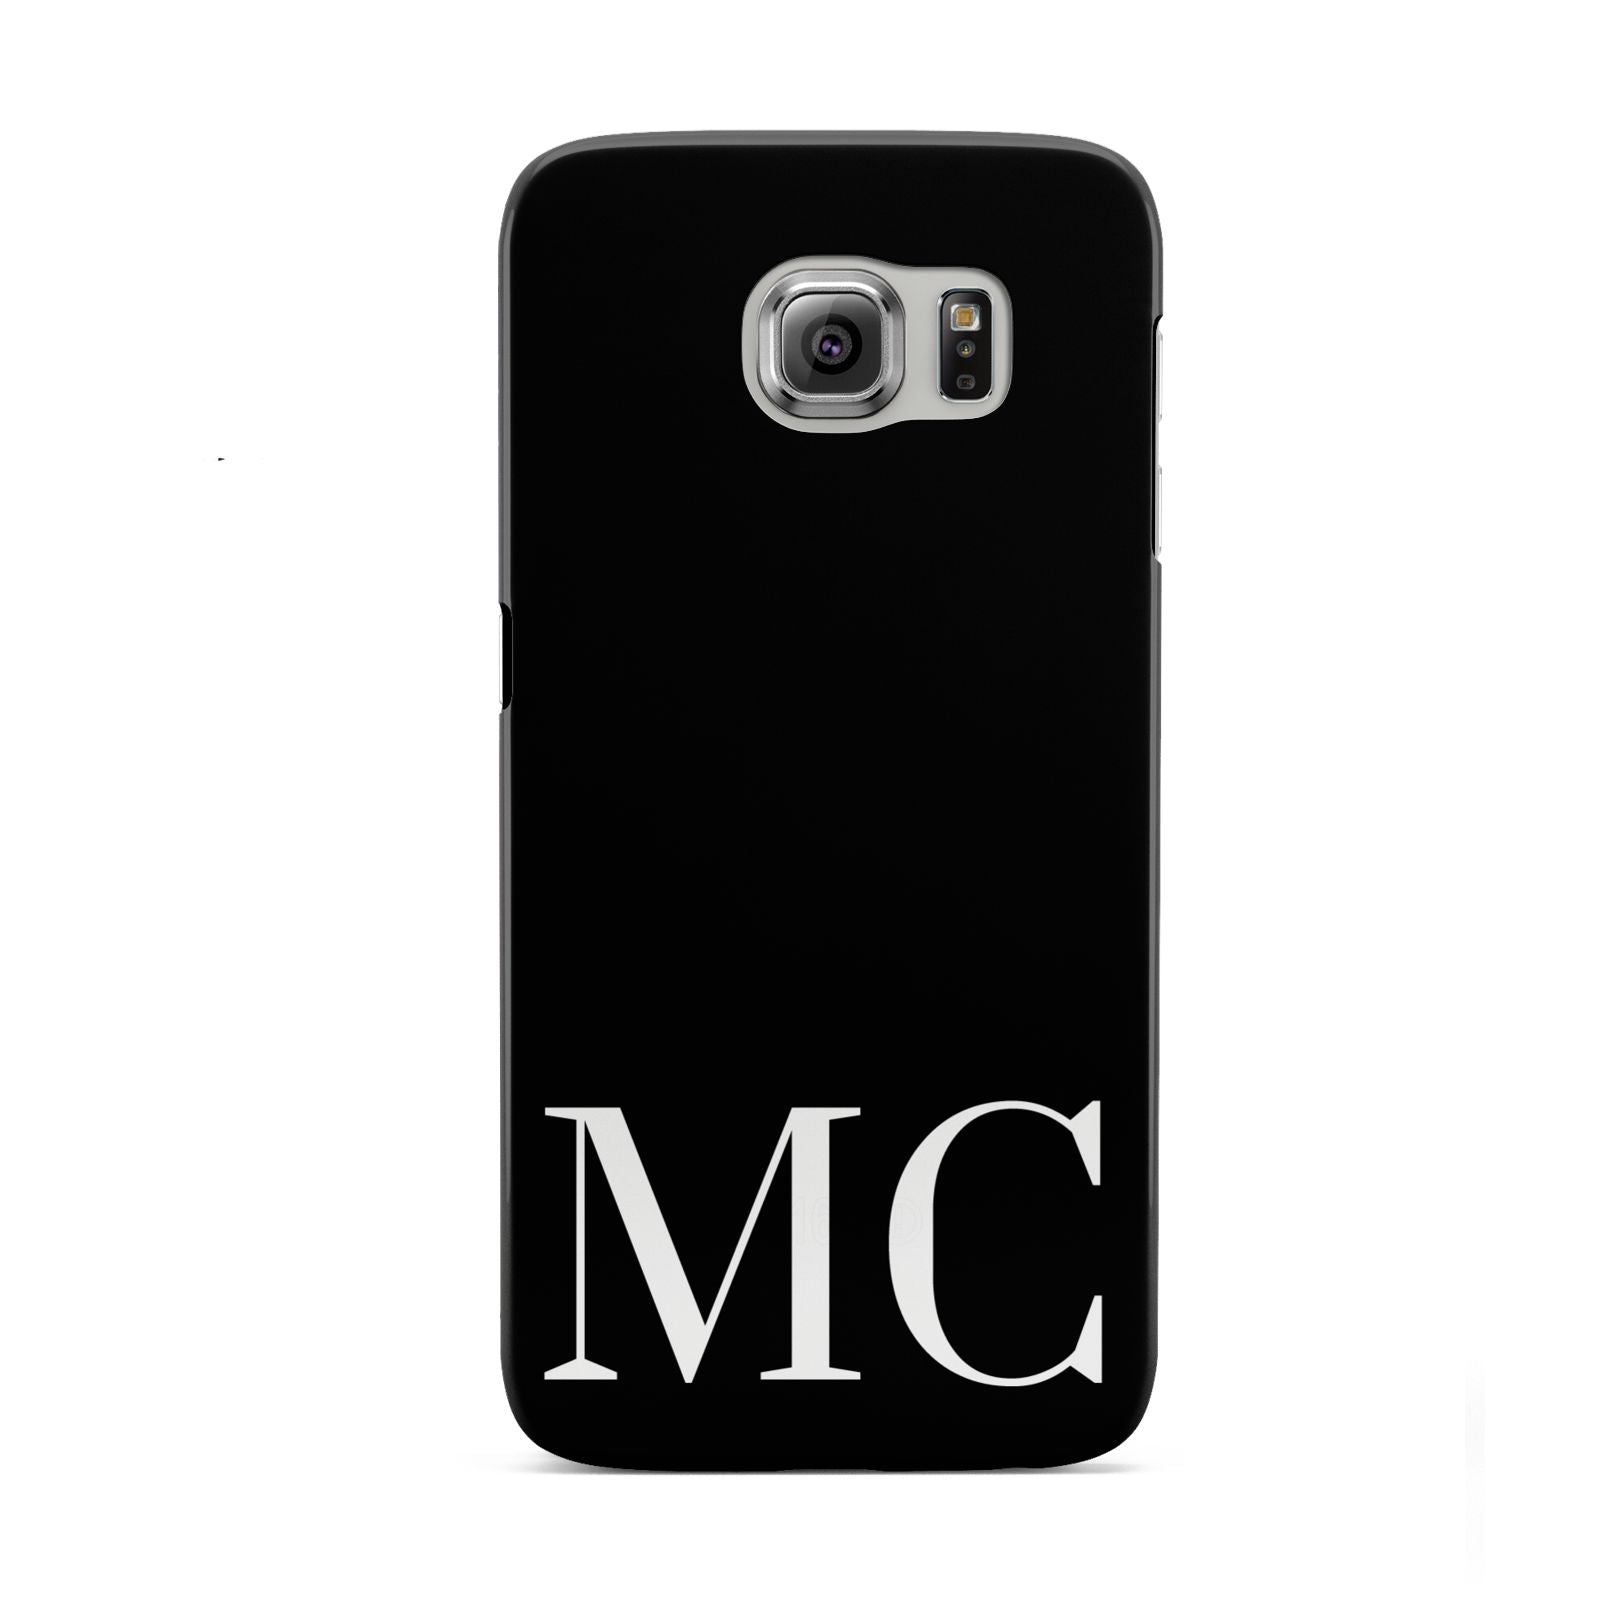 Initials Personalised 1 Samsung Galaxy S6 Case